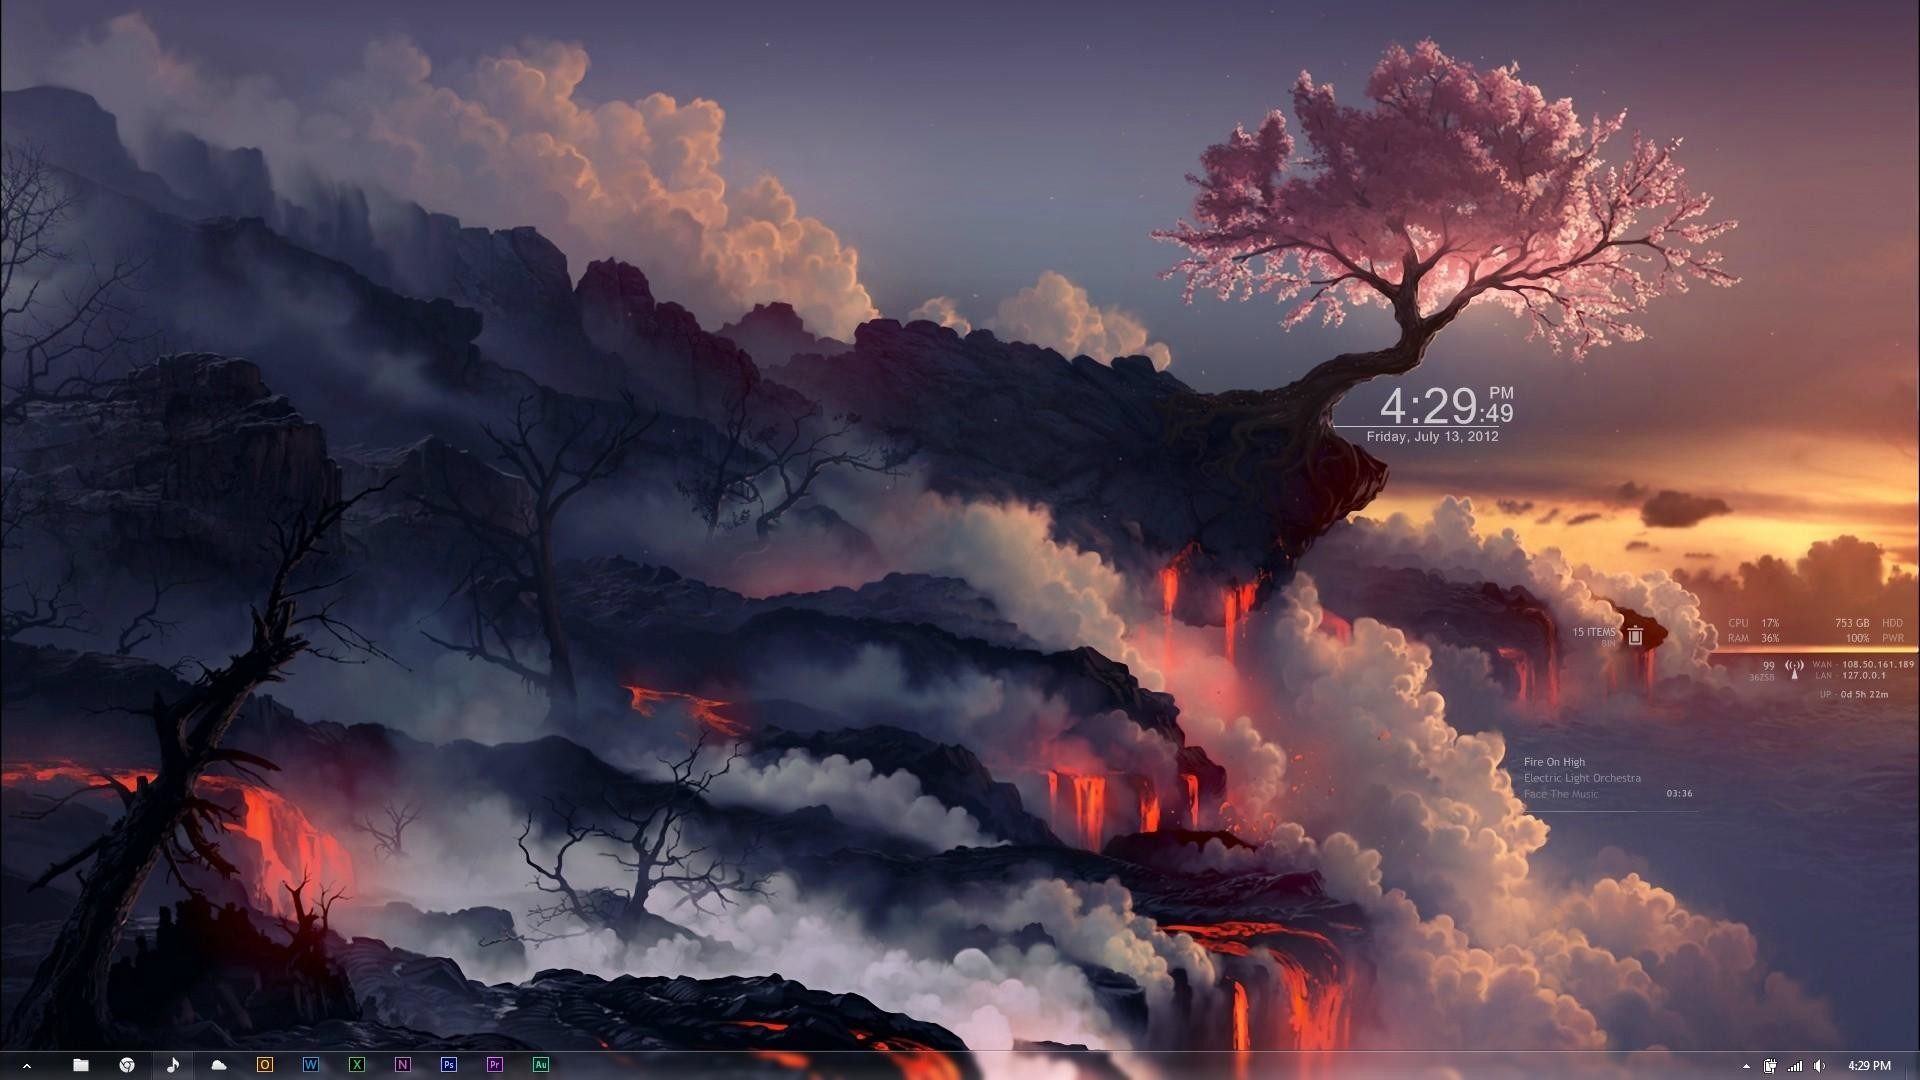 1920x1080 That feeling when the skins, wallpaper, and theme all work together  harmoniously - Cherry Blossom ...